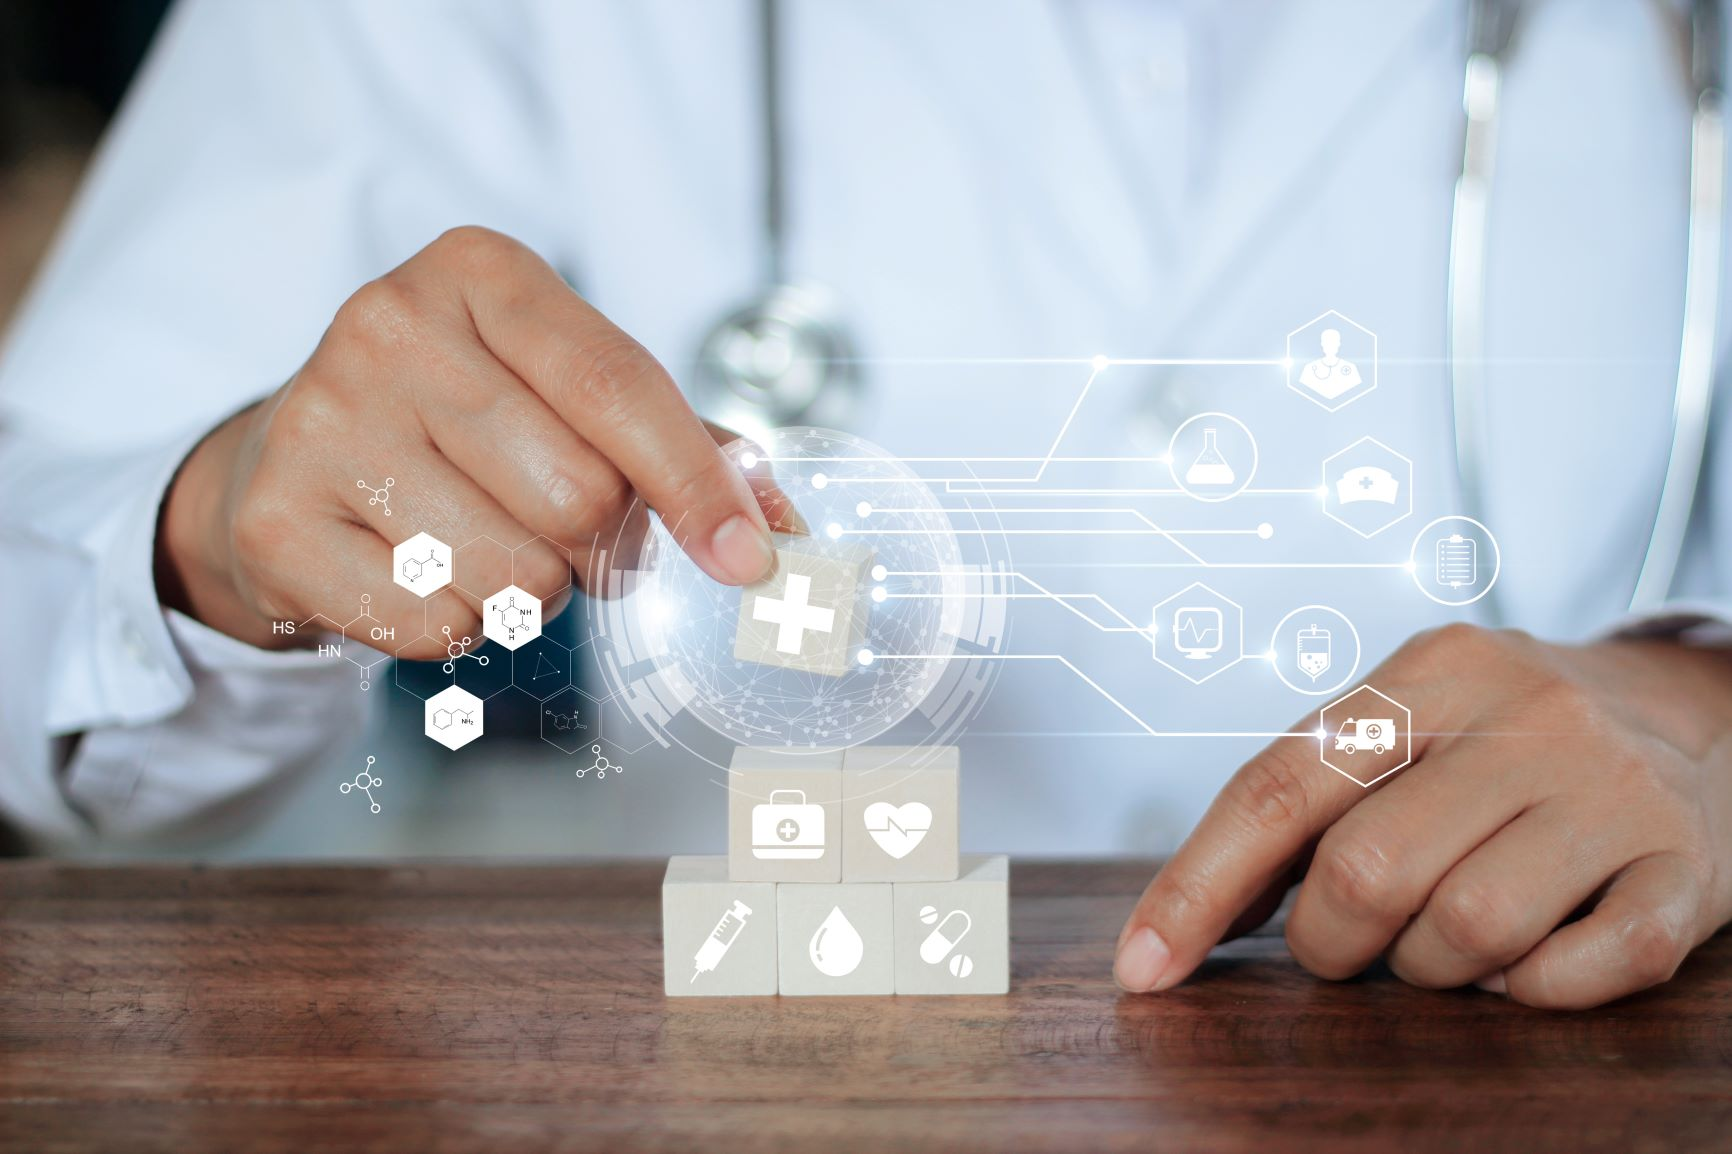 Future of care coordination and patient management at hospitals